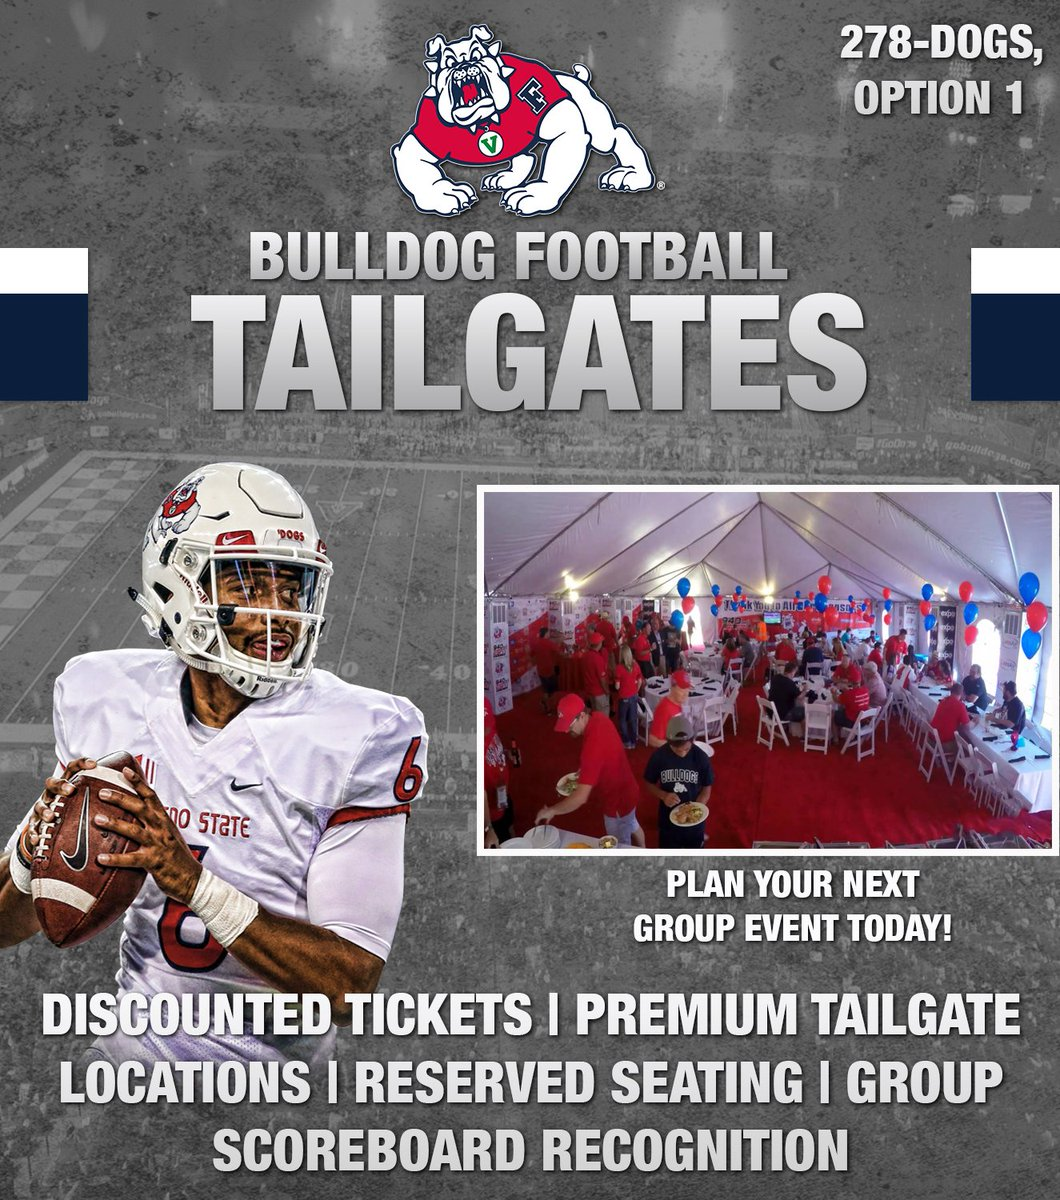 Fresno State Bulldogs on Twitter: